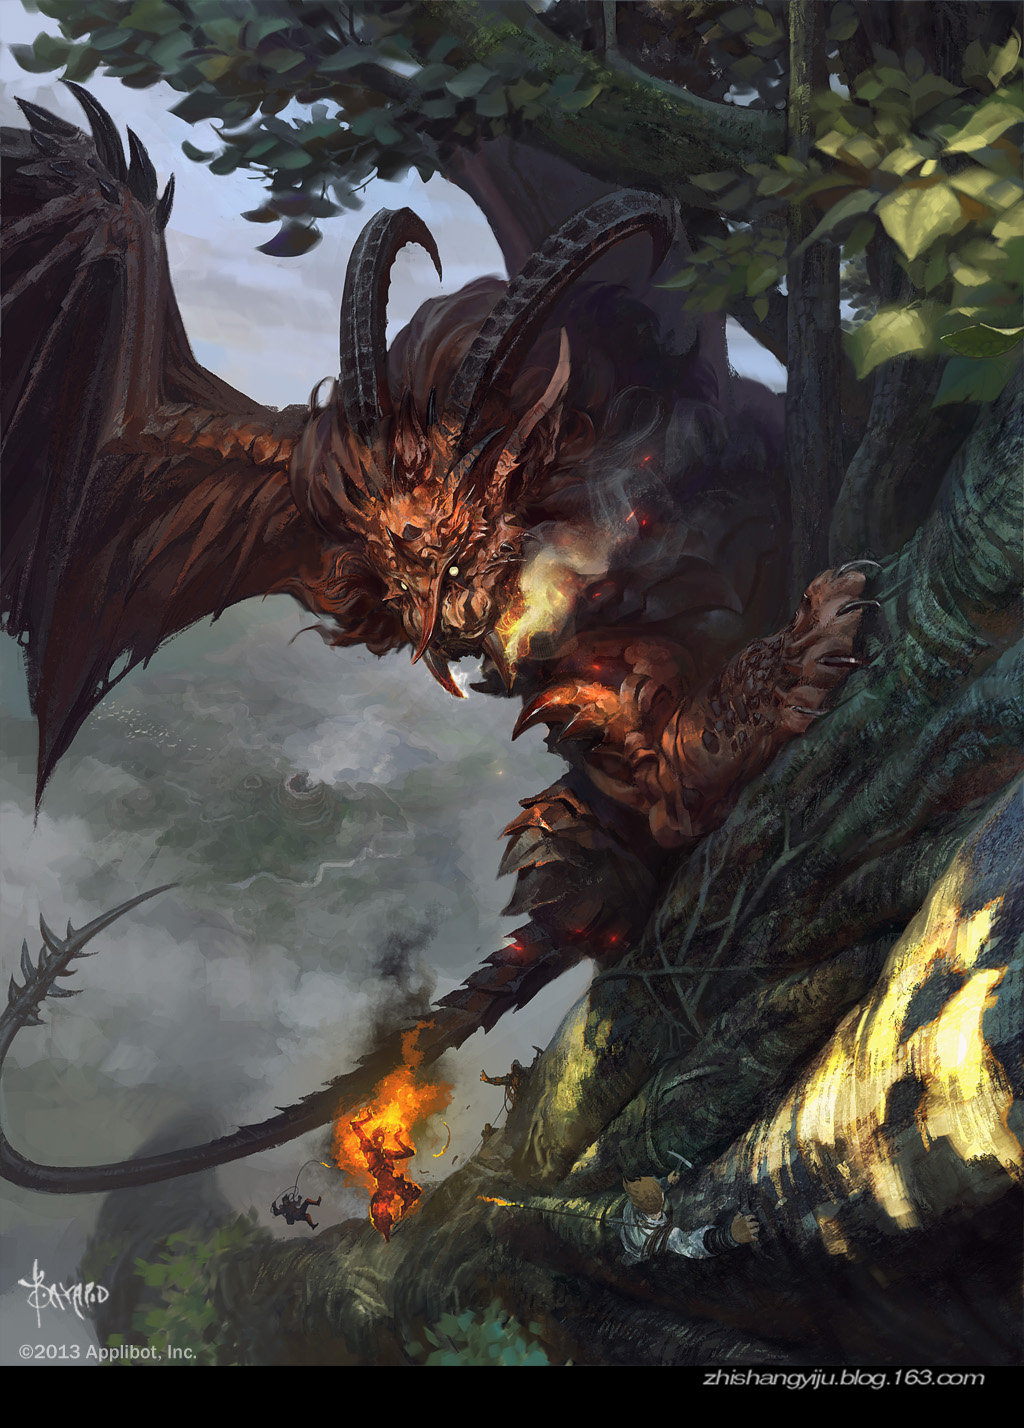 Bayard Wu Digital Painting Illustration Fantasy Manticore Creature